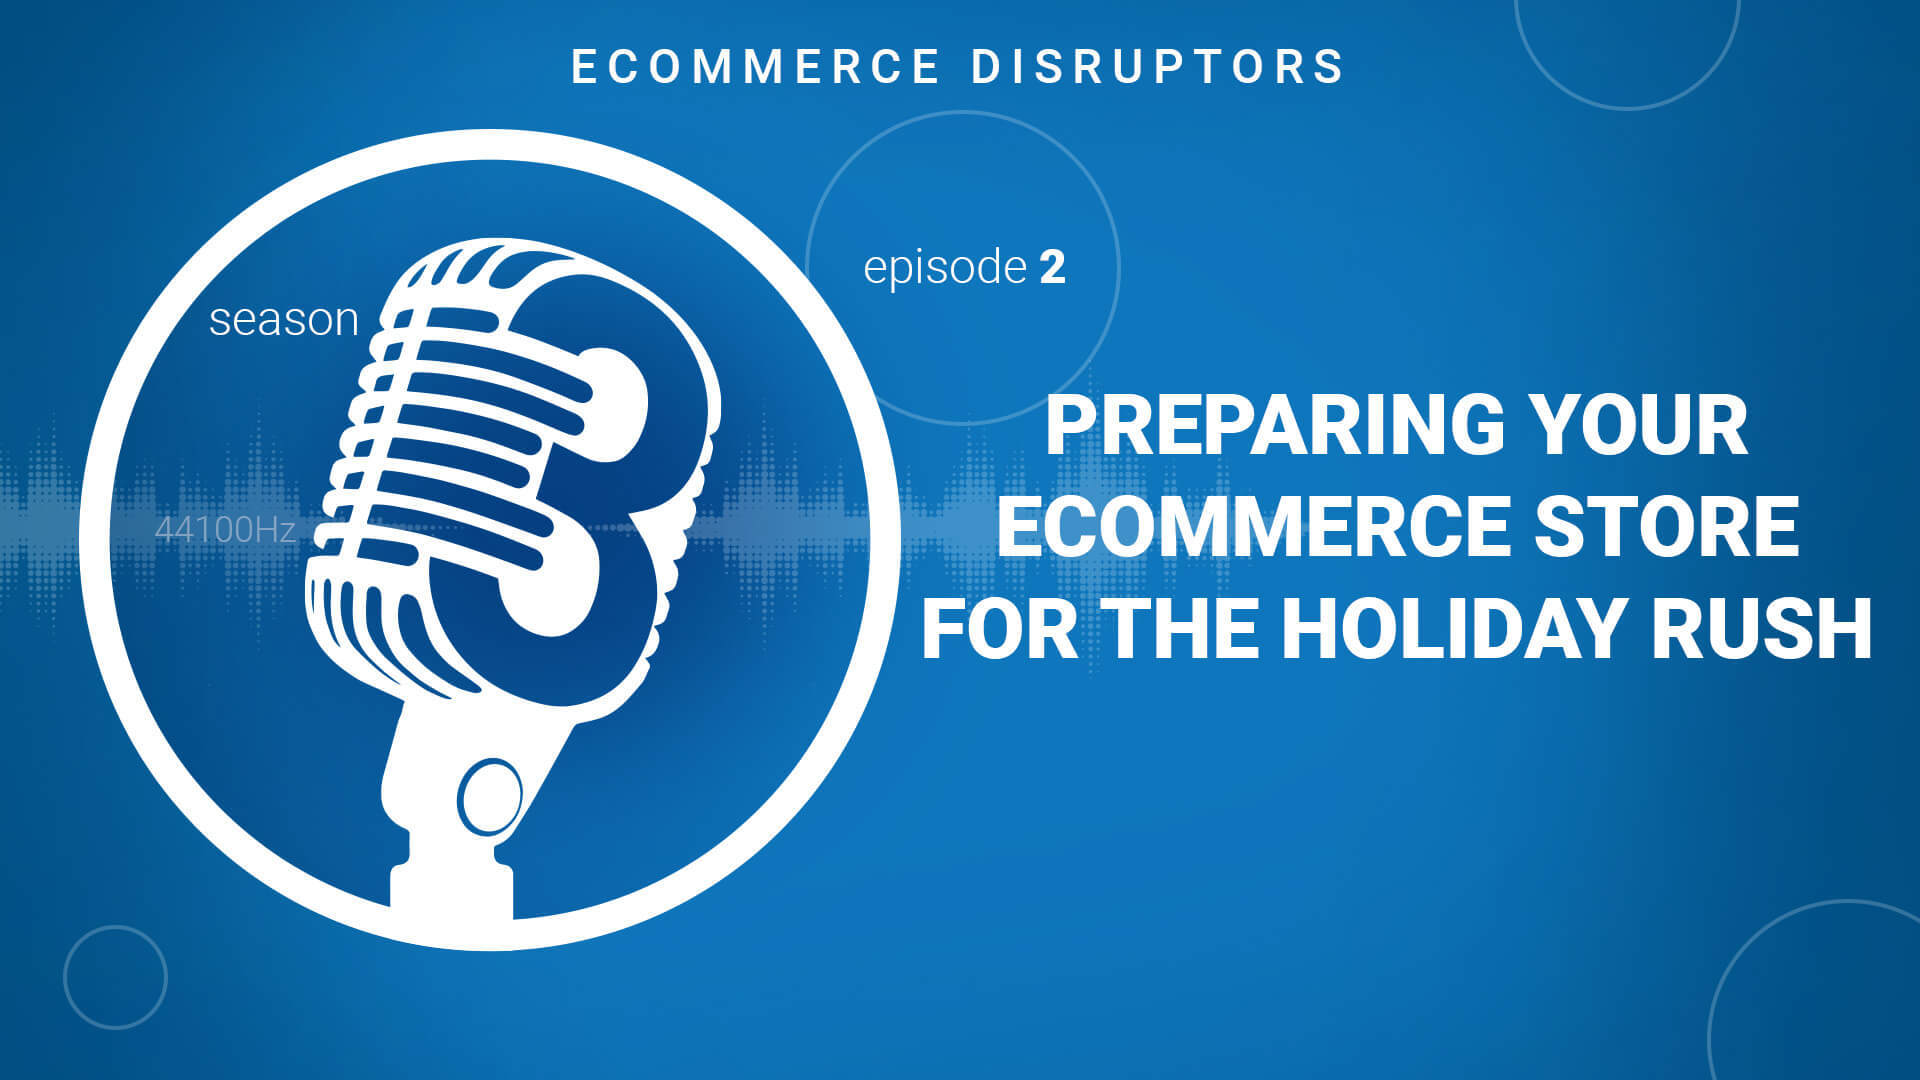 Preparing your ecommerce store for Black Friday, Cyber Monday, and the holiday rush